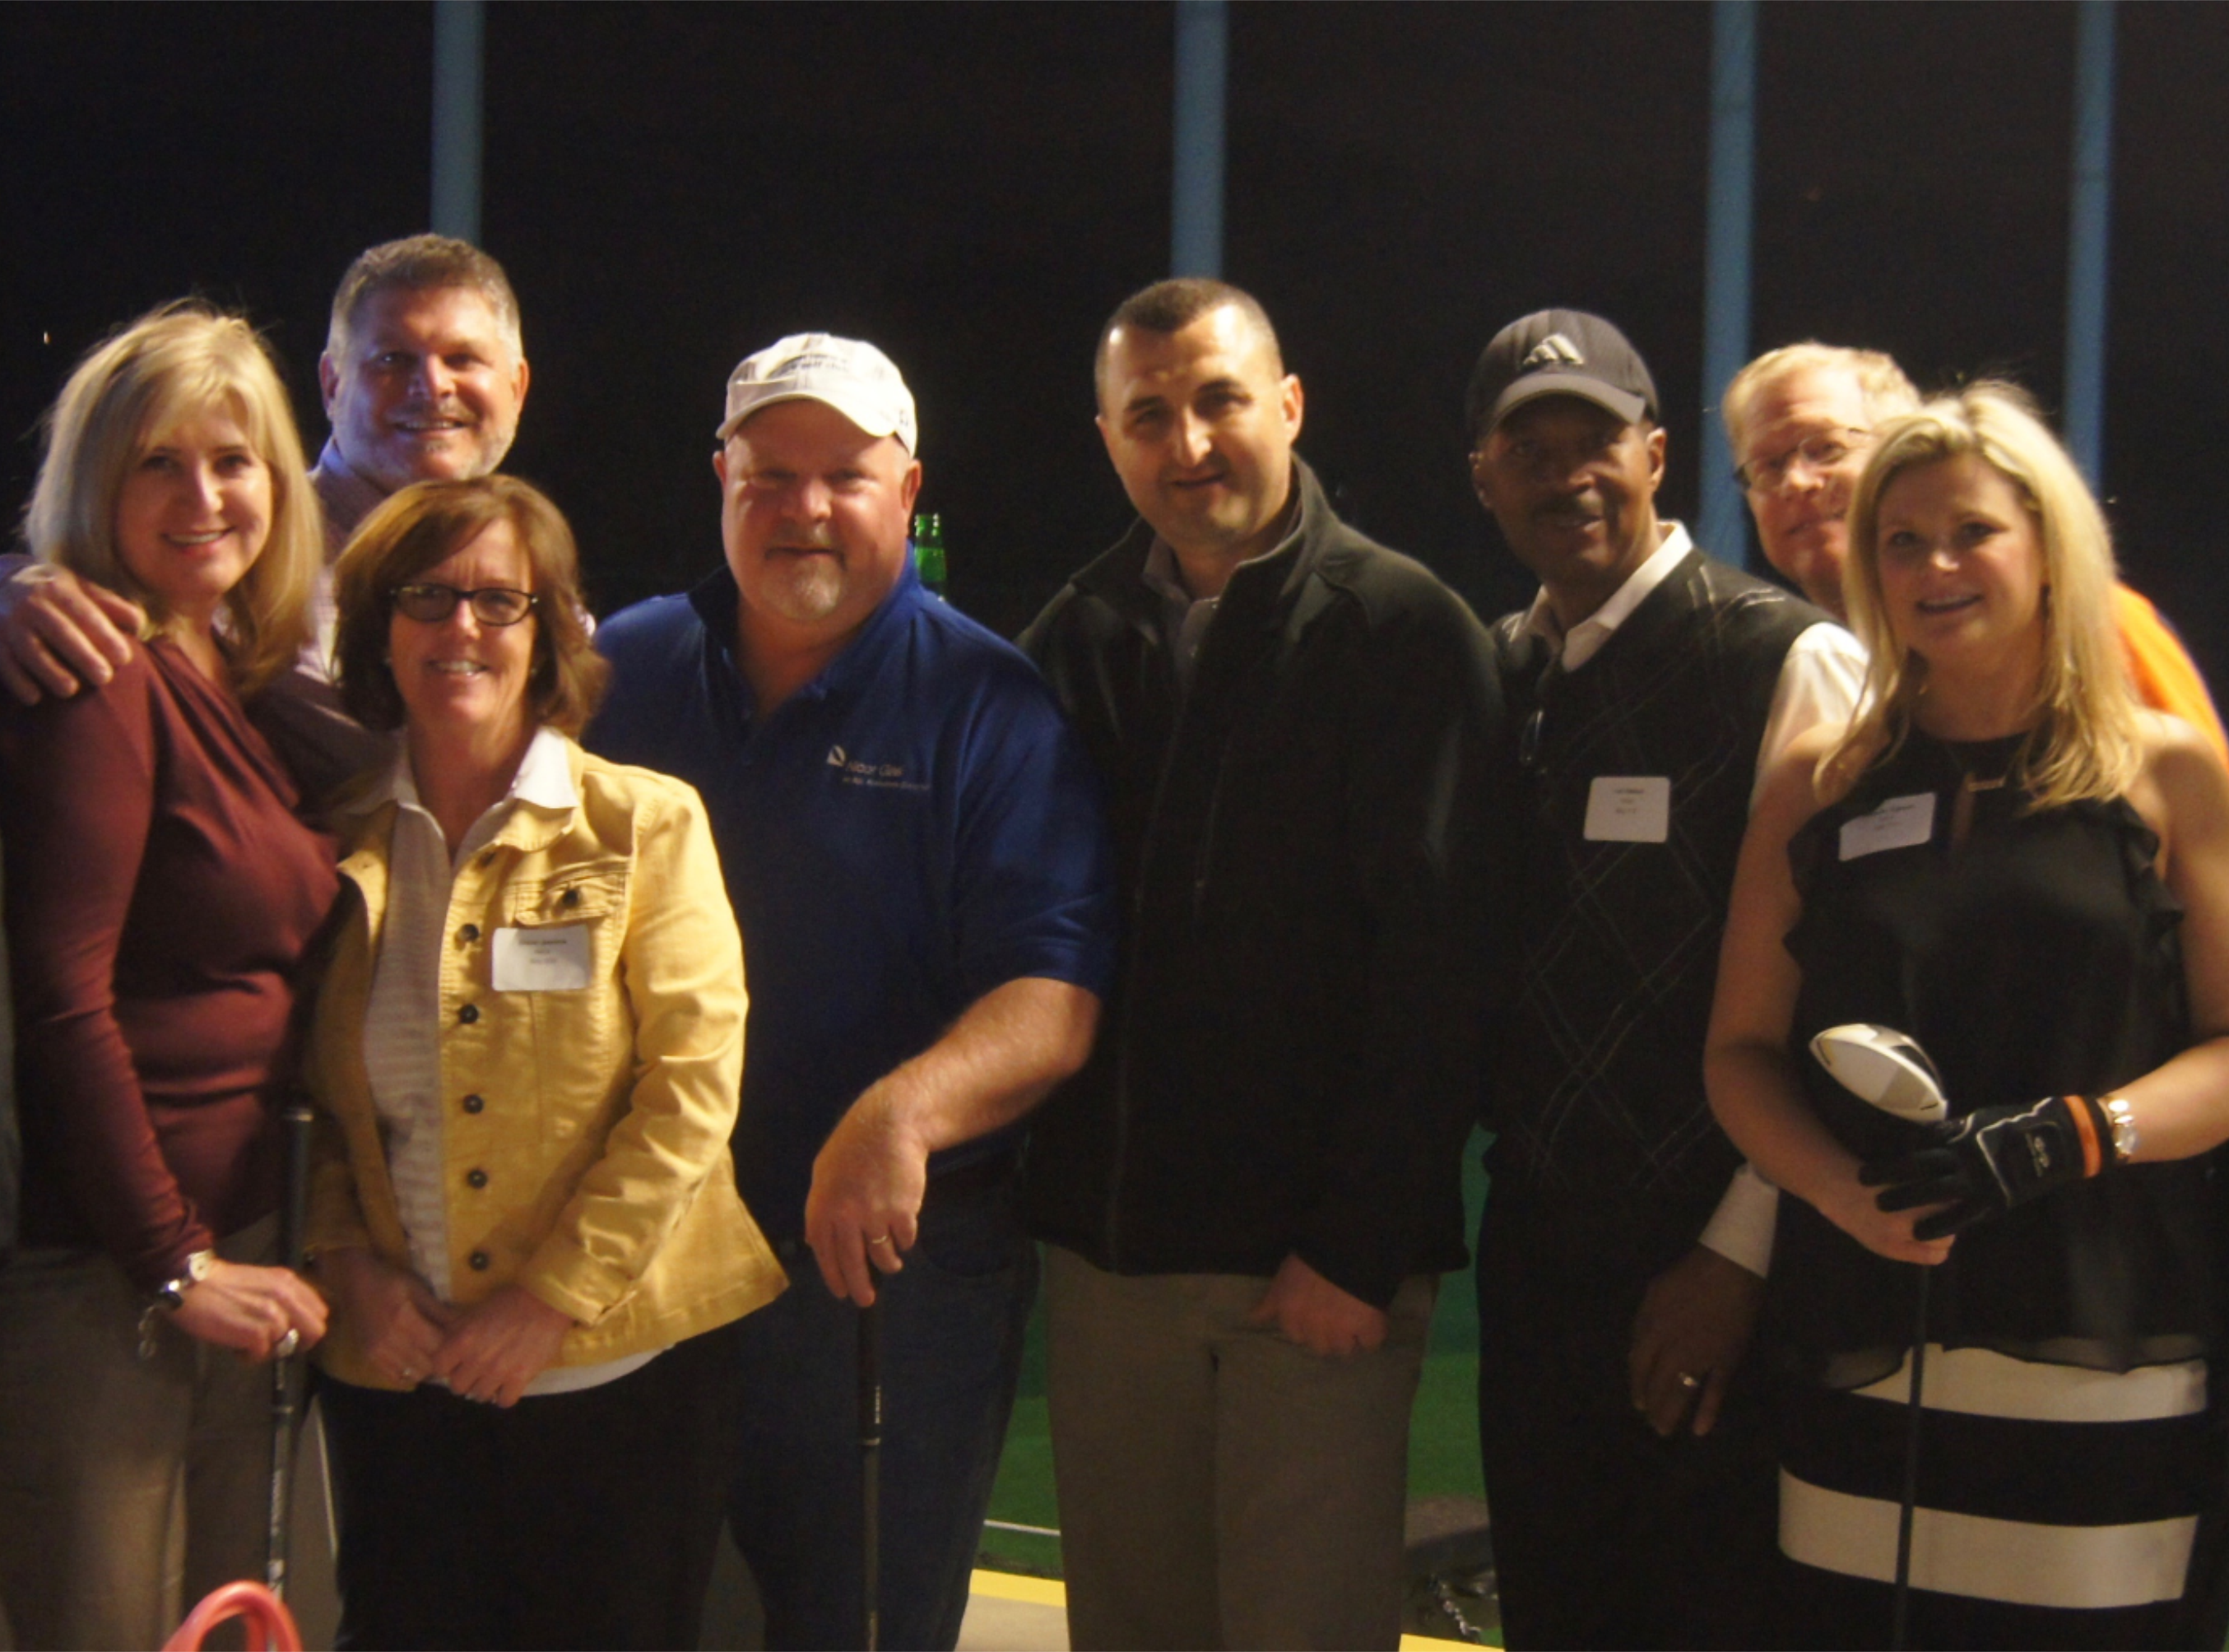 Western Division Top Golf Fundraiser